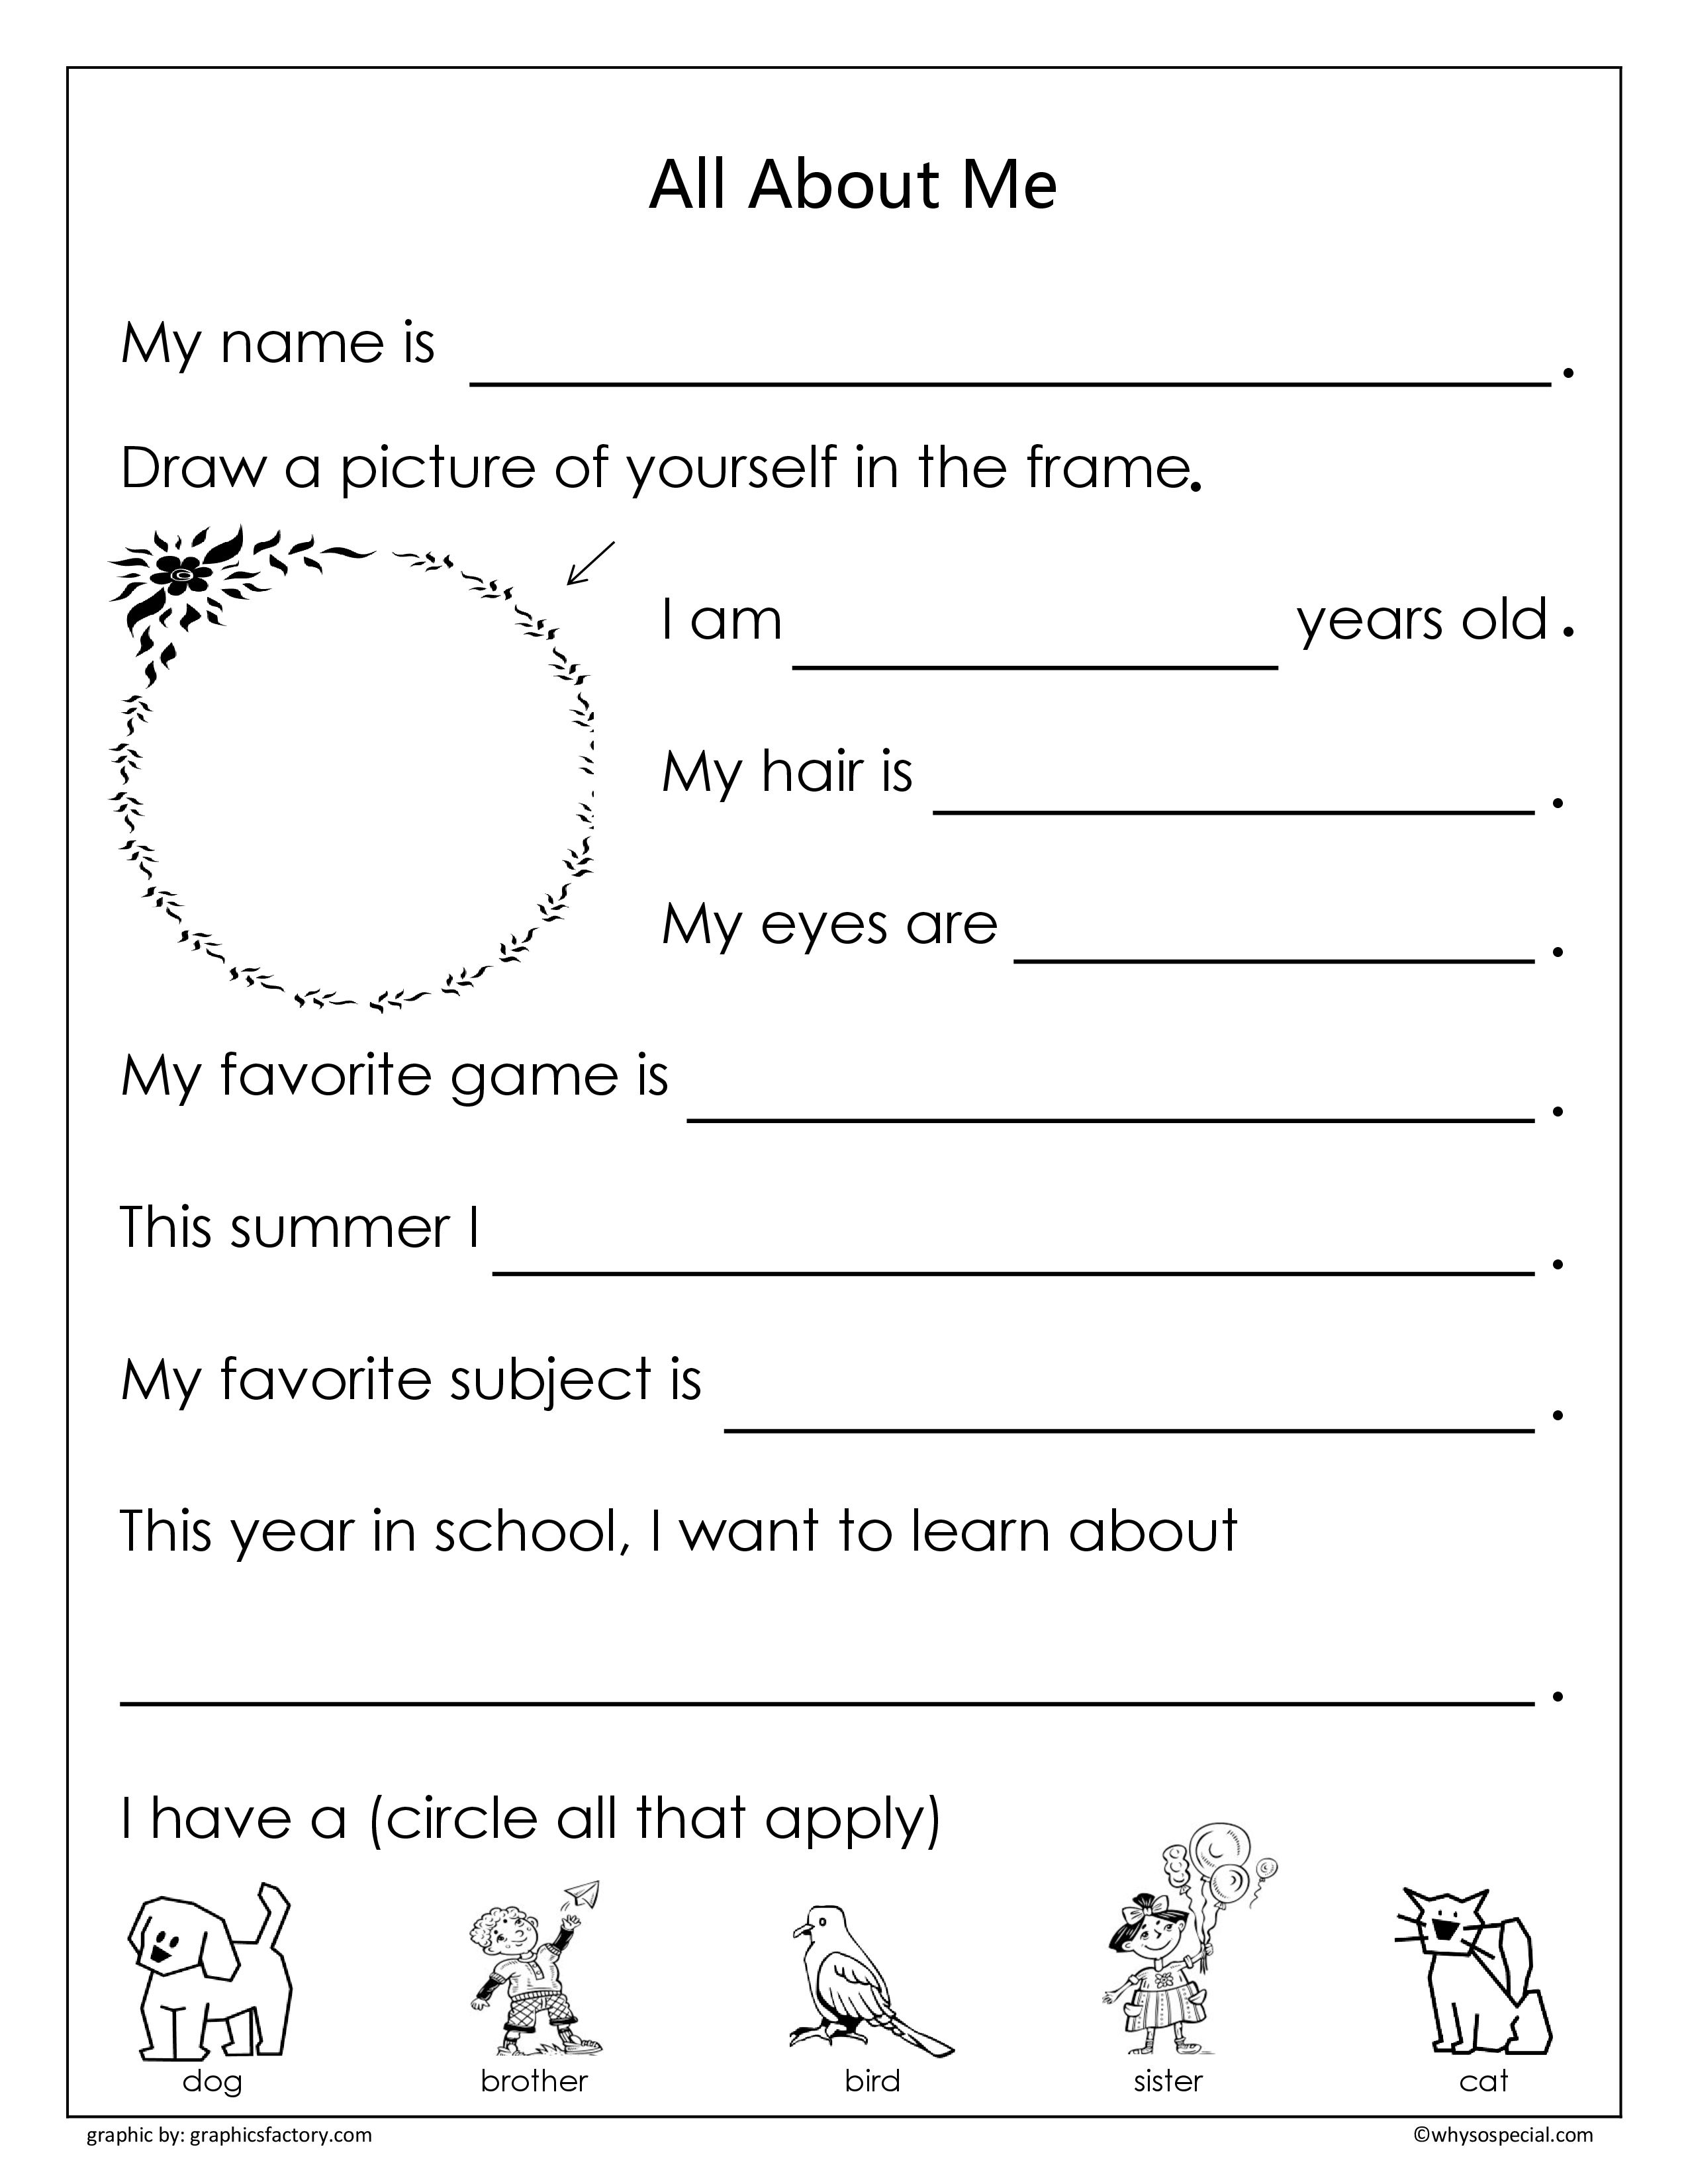 Awesome All About Me Coloring Pages For Preschoolers